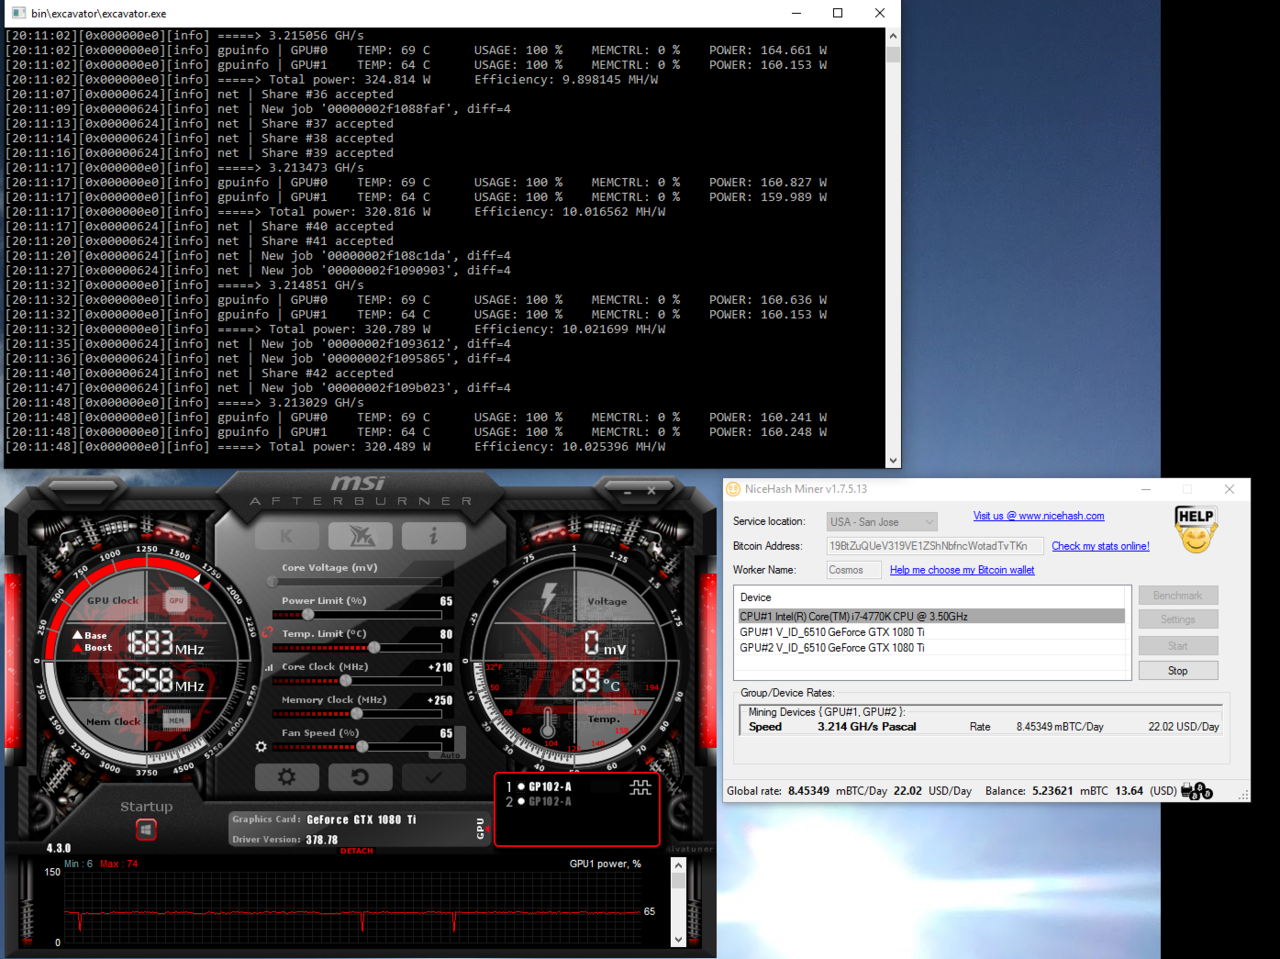 Comparison of mining on AMD Fury X vs mining on 1080TI with